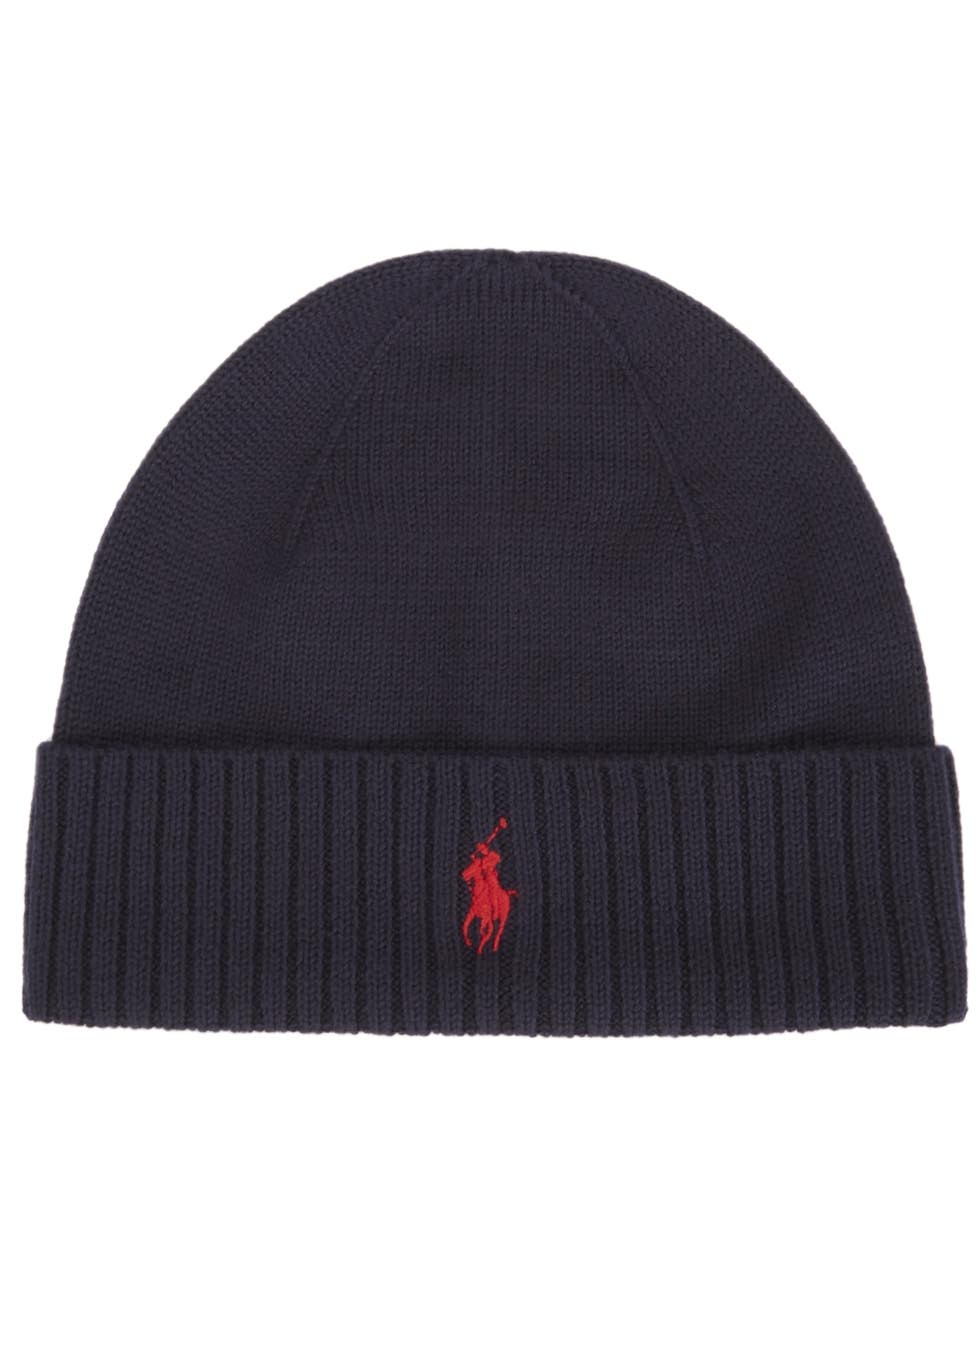 Polo Ralph Lauren Navy Merino Wool Hat in Blue for Men - Lyst 81490d22640